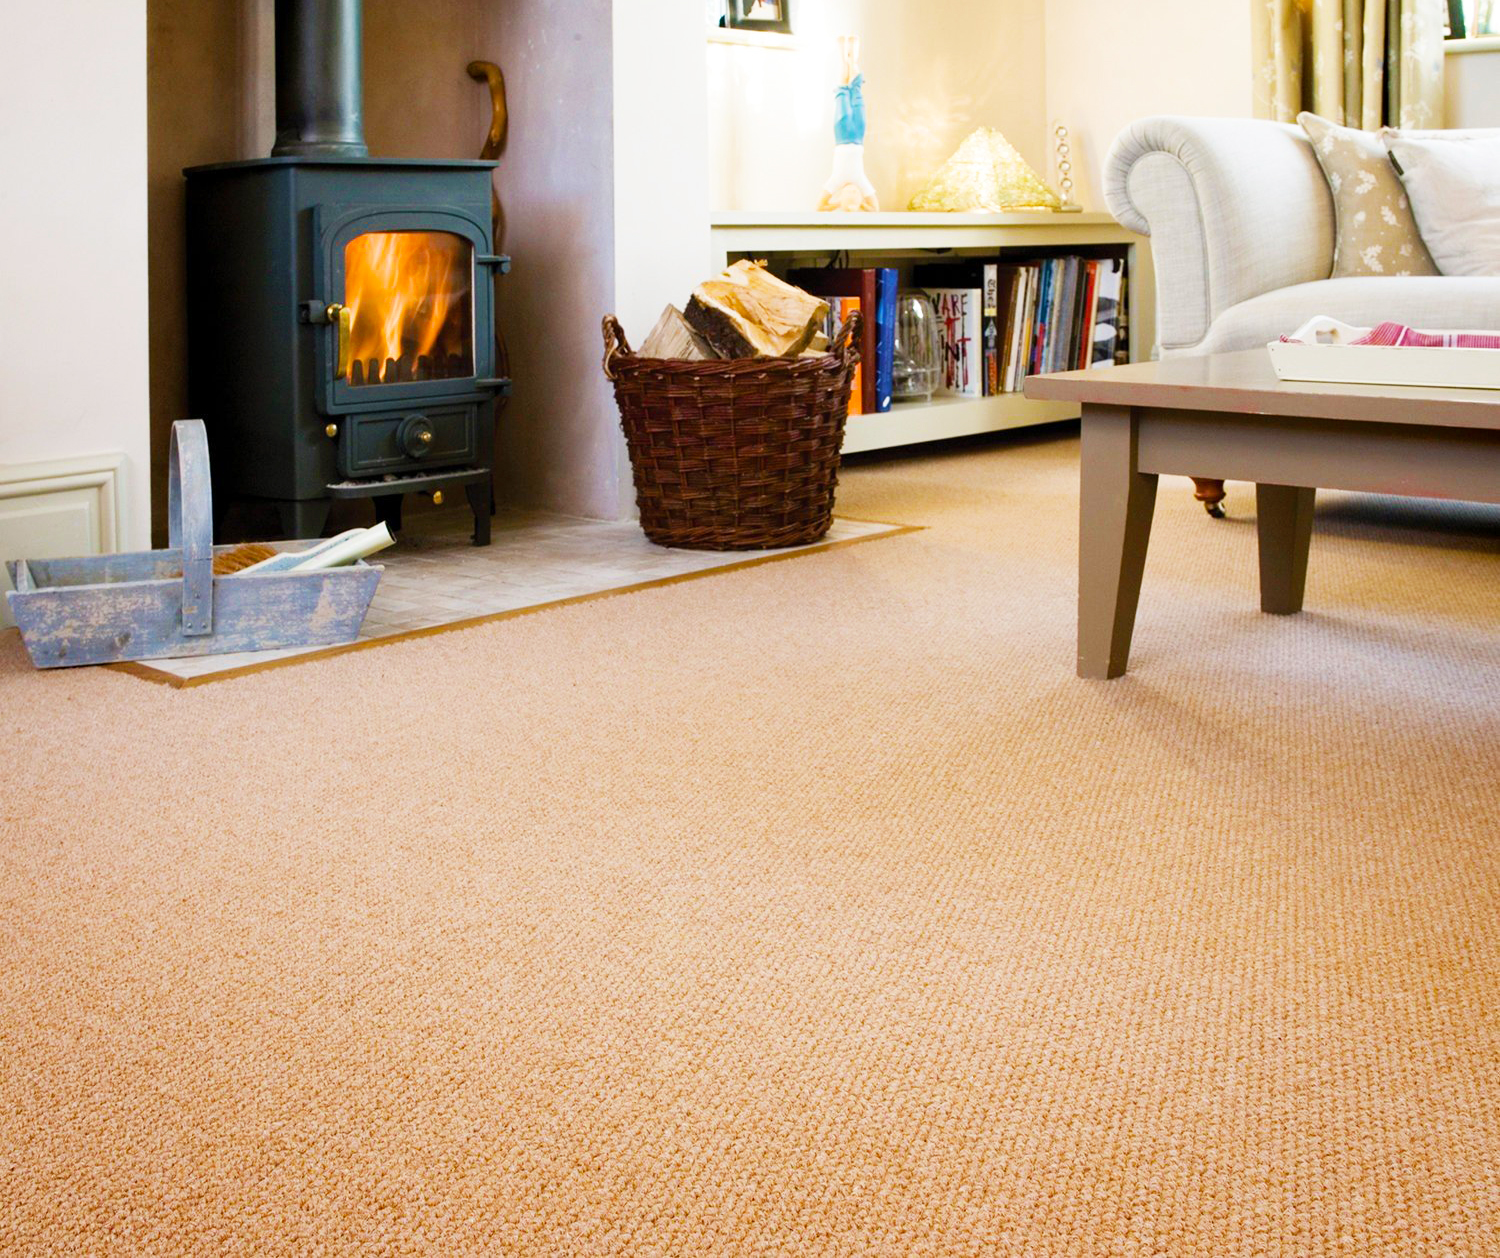 Carpet Tiles In Living Room And Installation